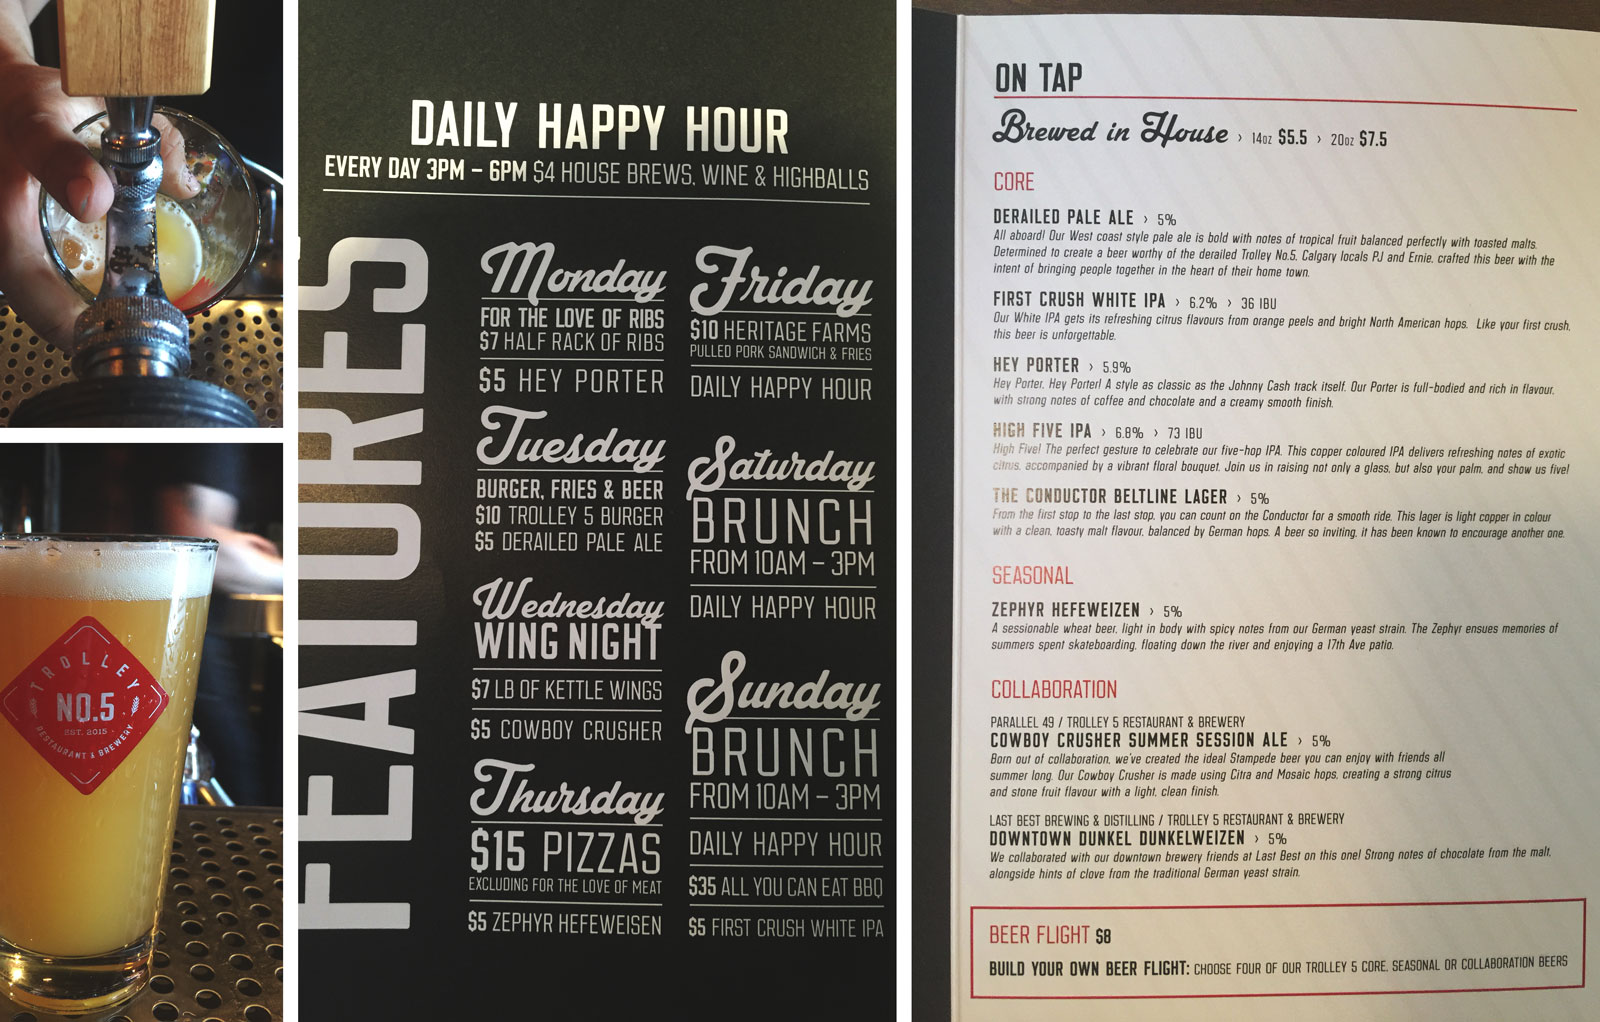 trolley-no-5-five-beer-brewery-on-tap-menu-features